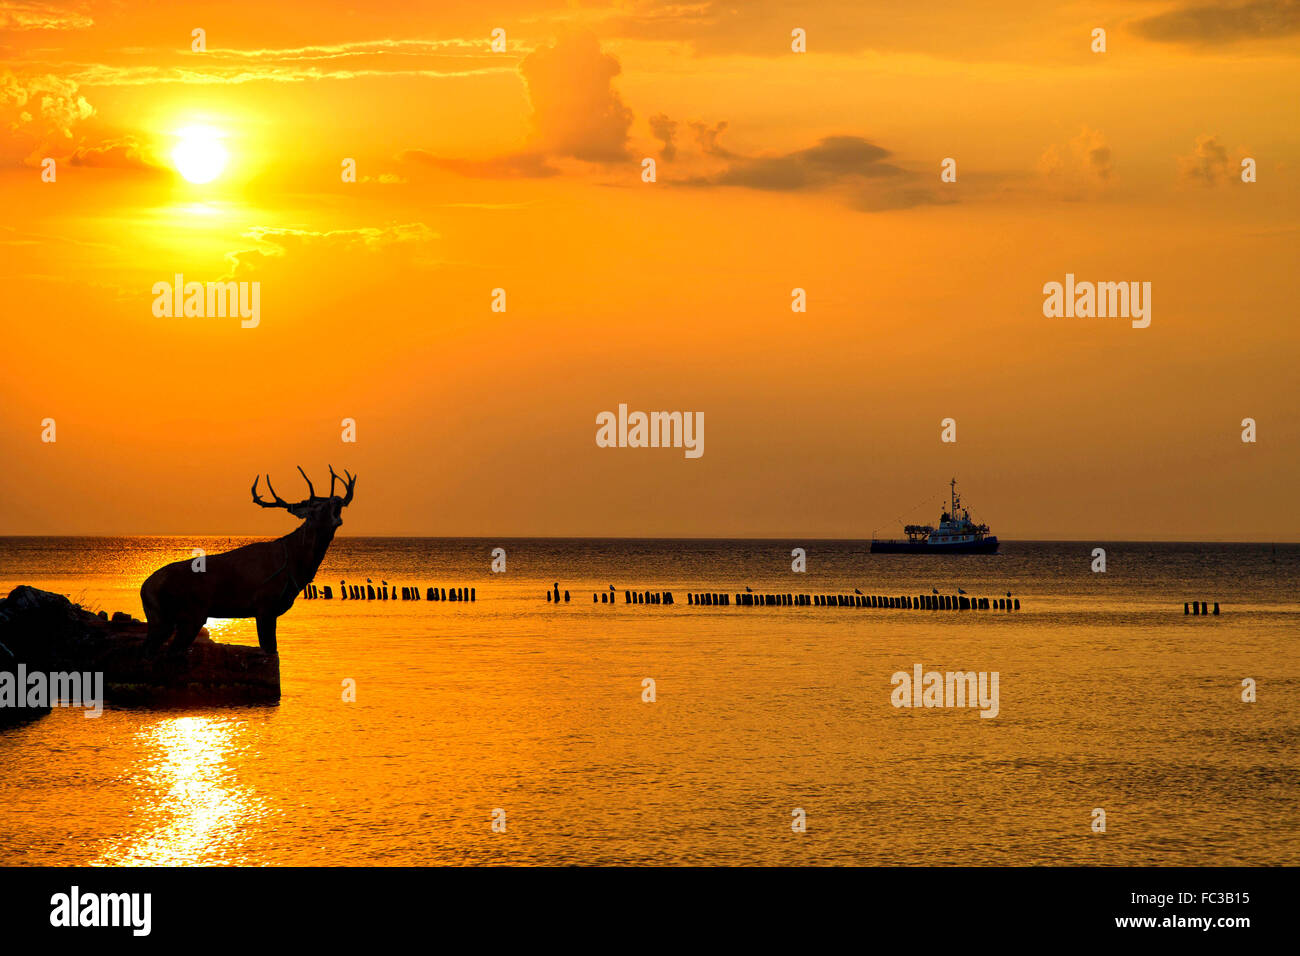 Red deer bellowing at sunset in the wild - Stock Image